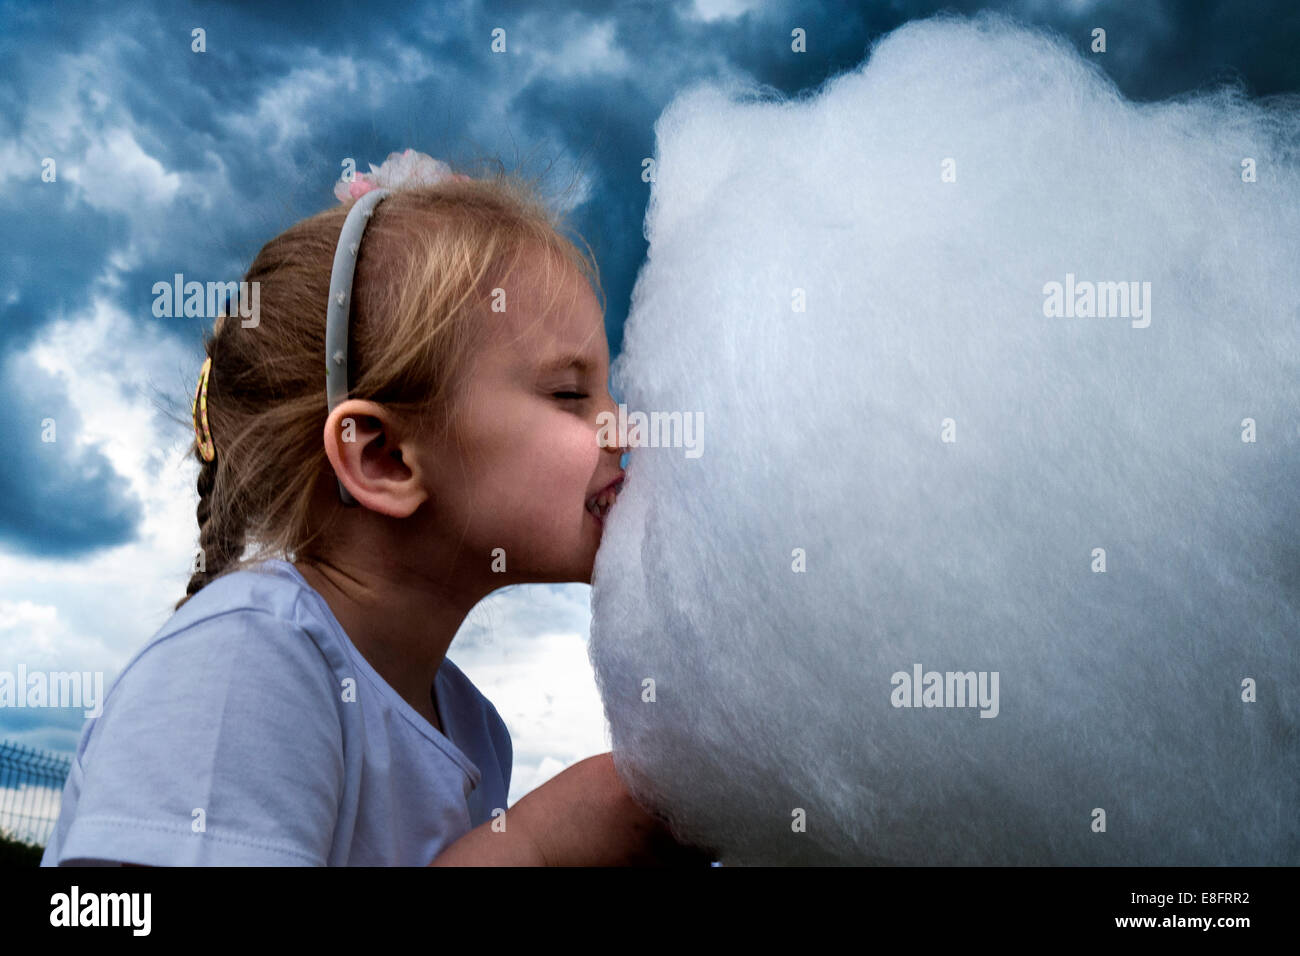 Little girl eating cotton candy with dramatic sky behind her - Stock Image